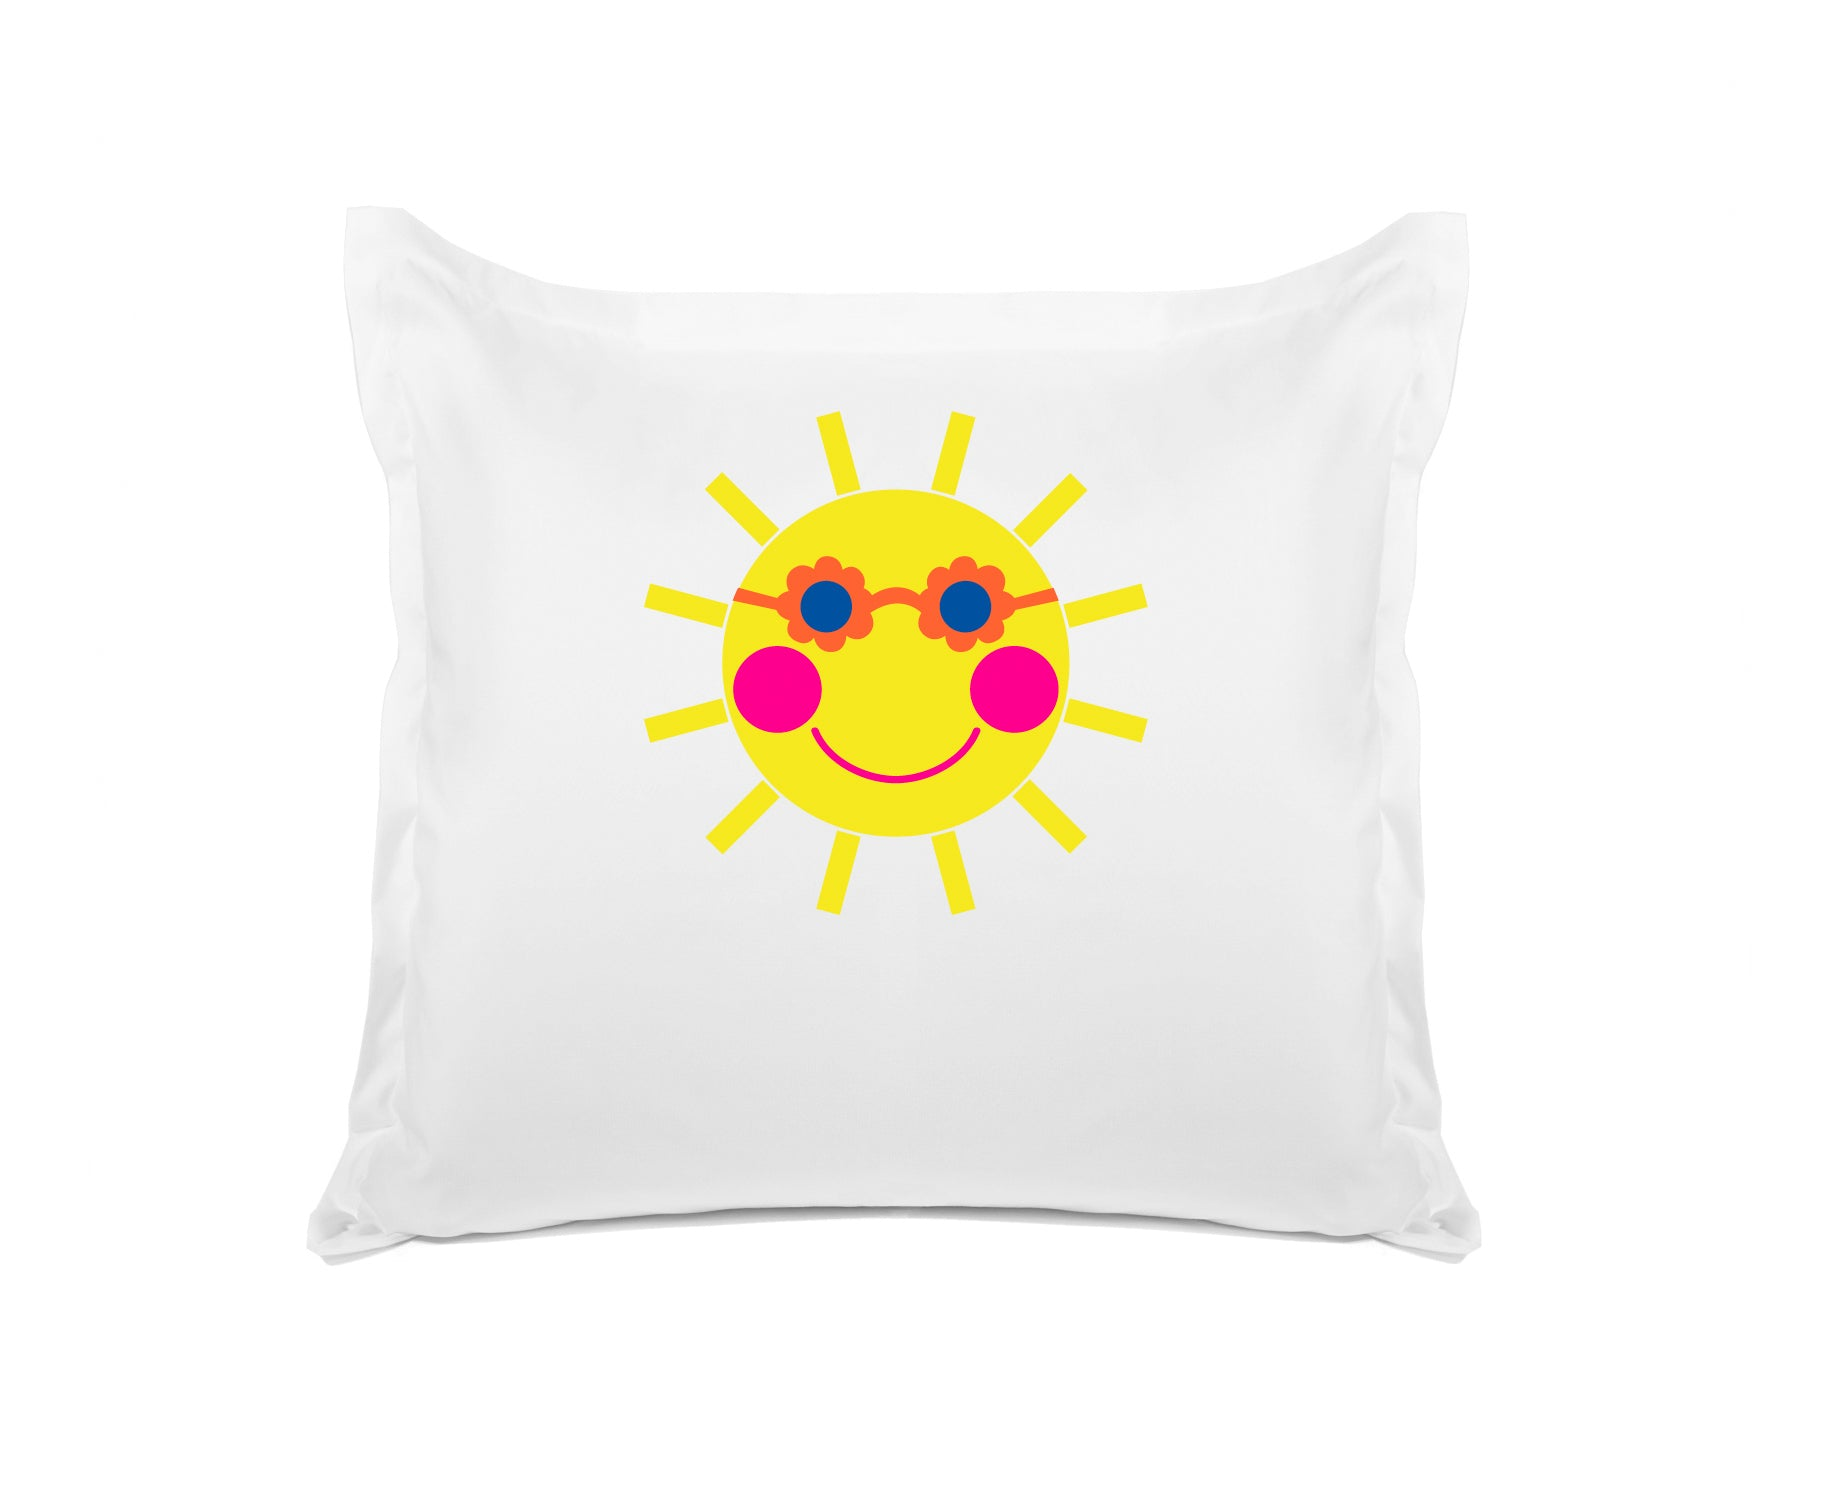 Happy Sunshine - Personalized Kids Pillowcase Collection